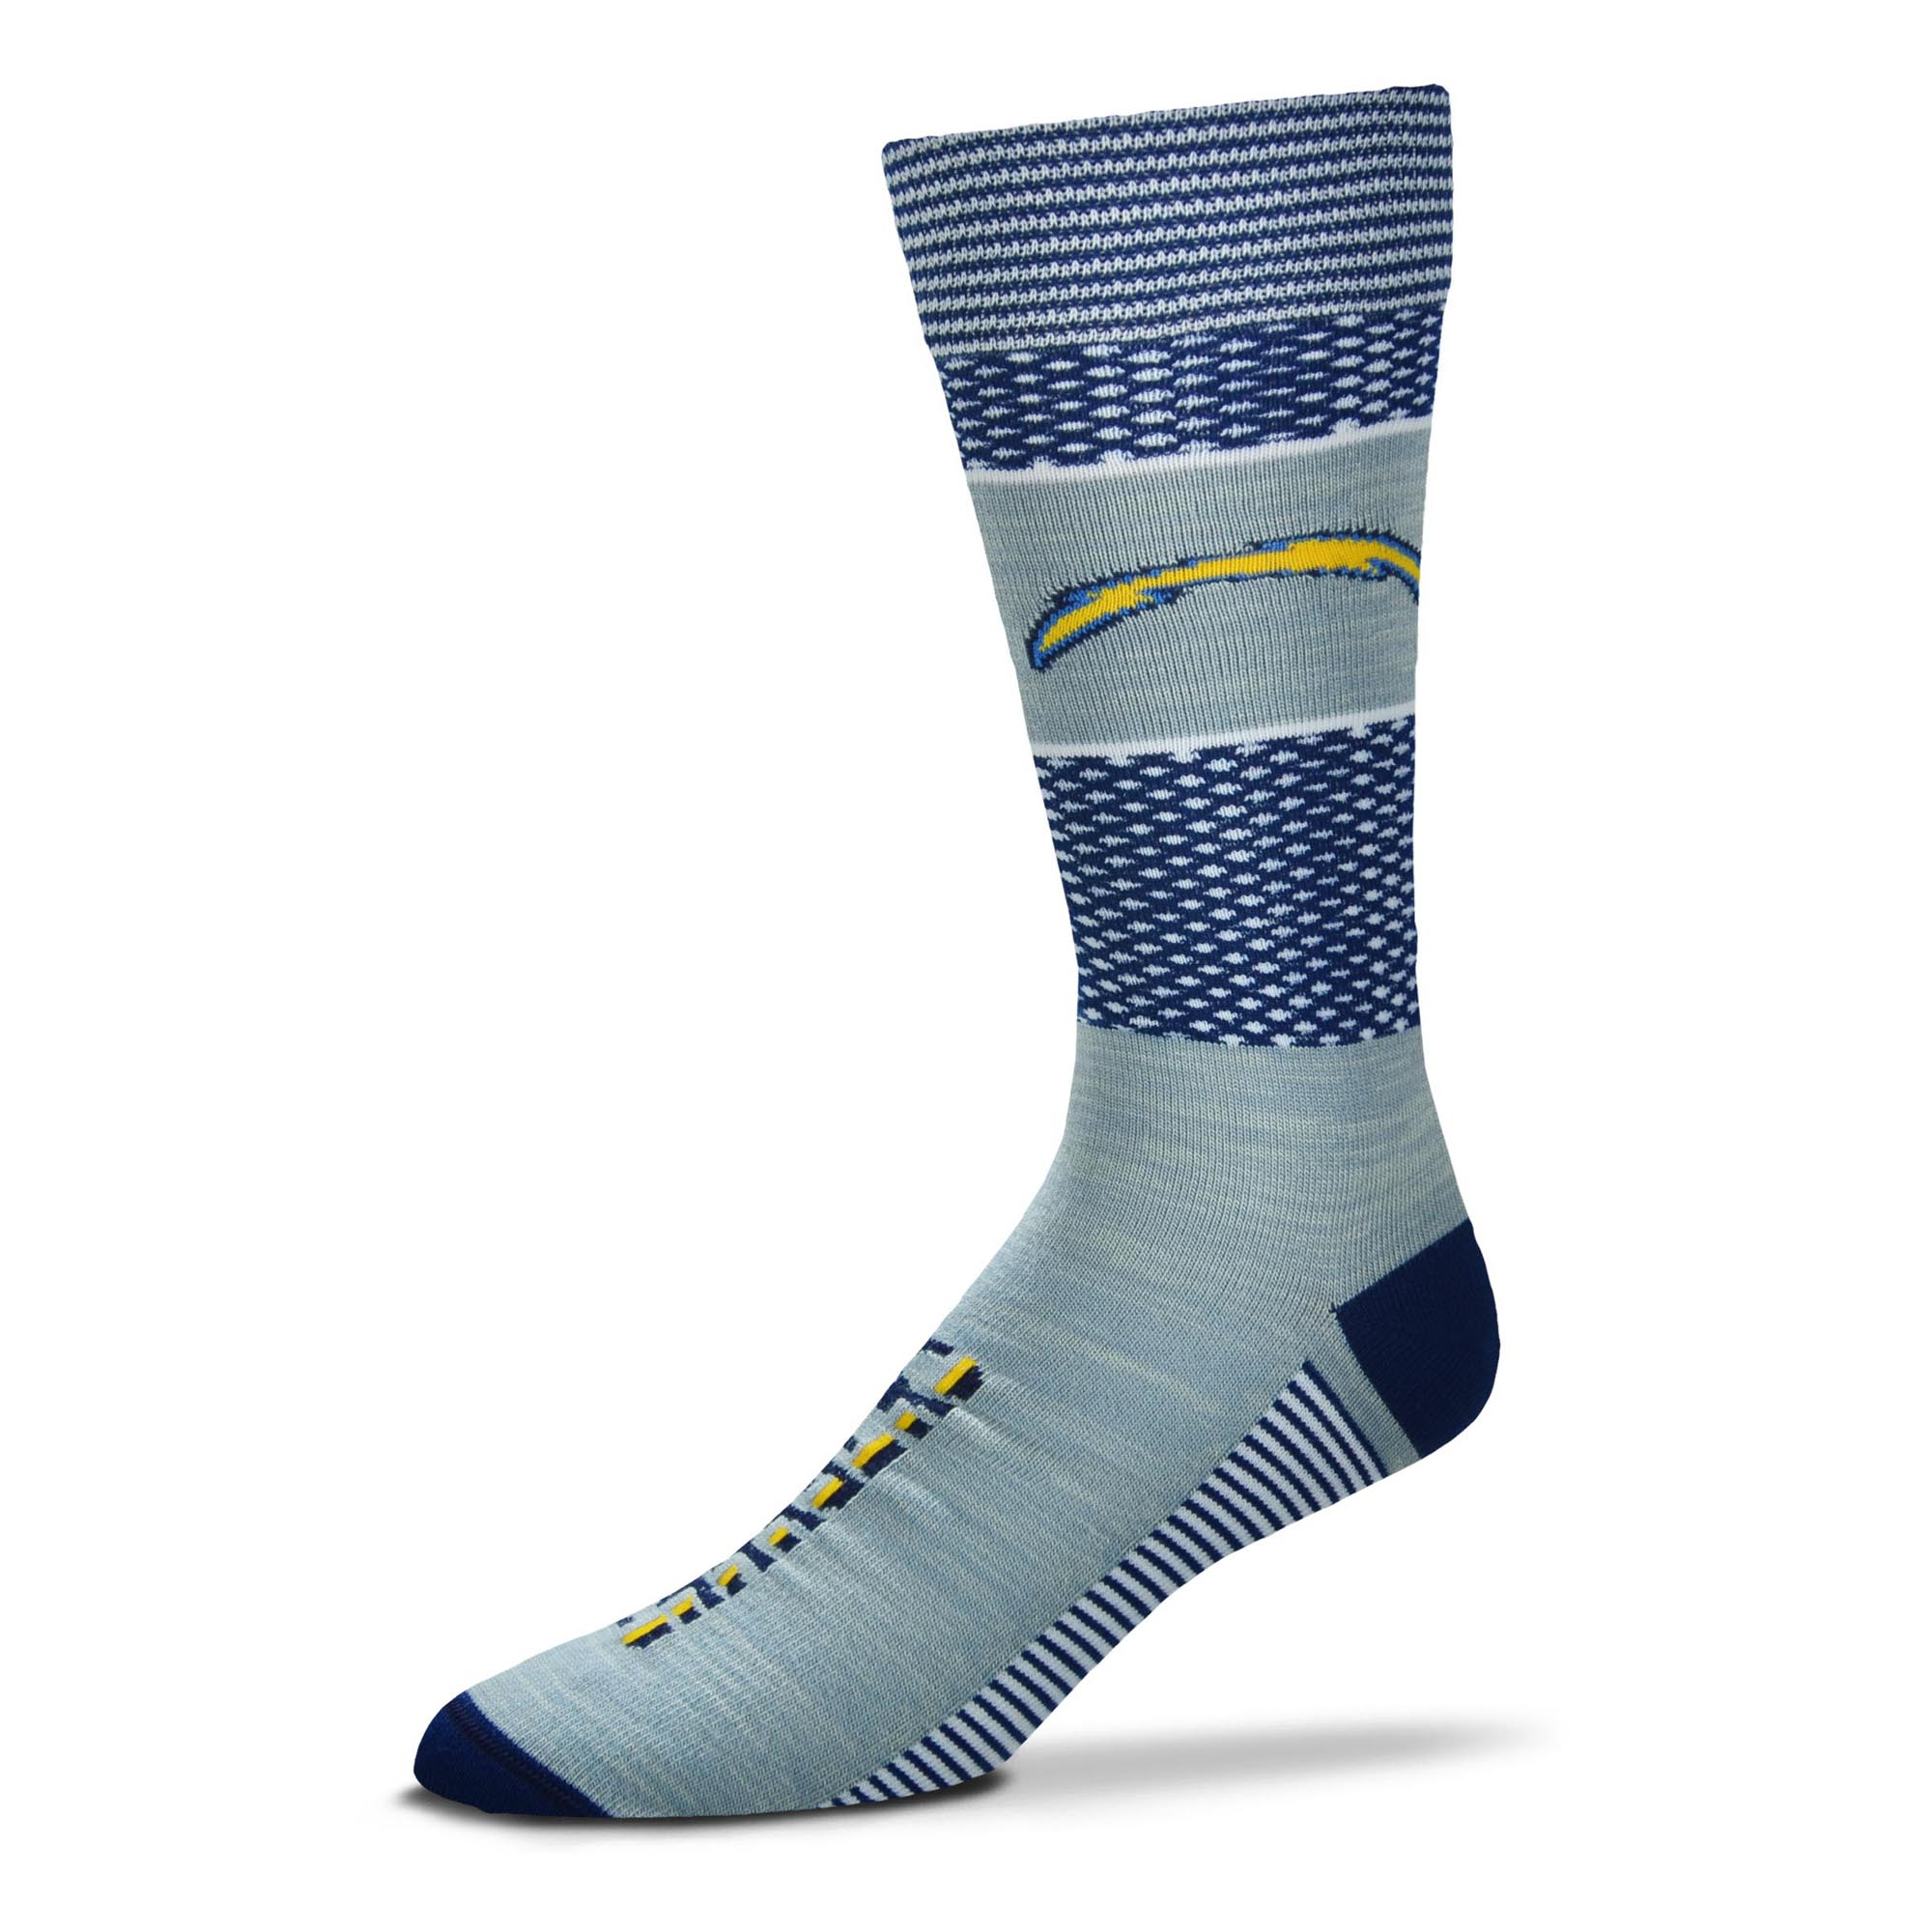 Los Angeles Chargers For Bare Feet Women's Mojo Crew Socks - M